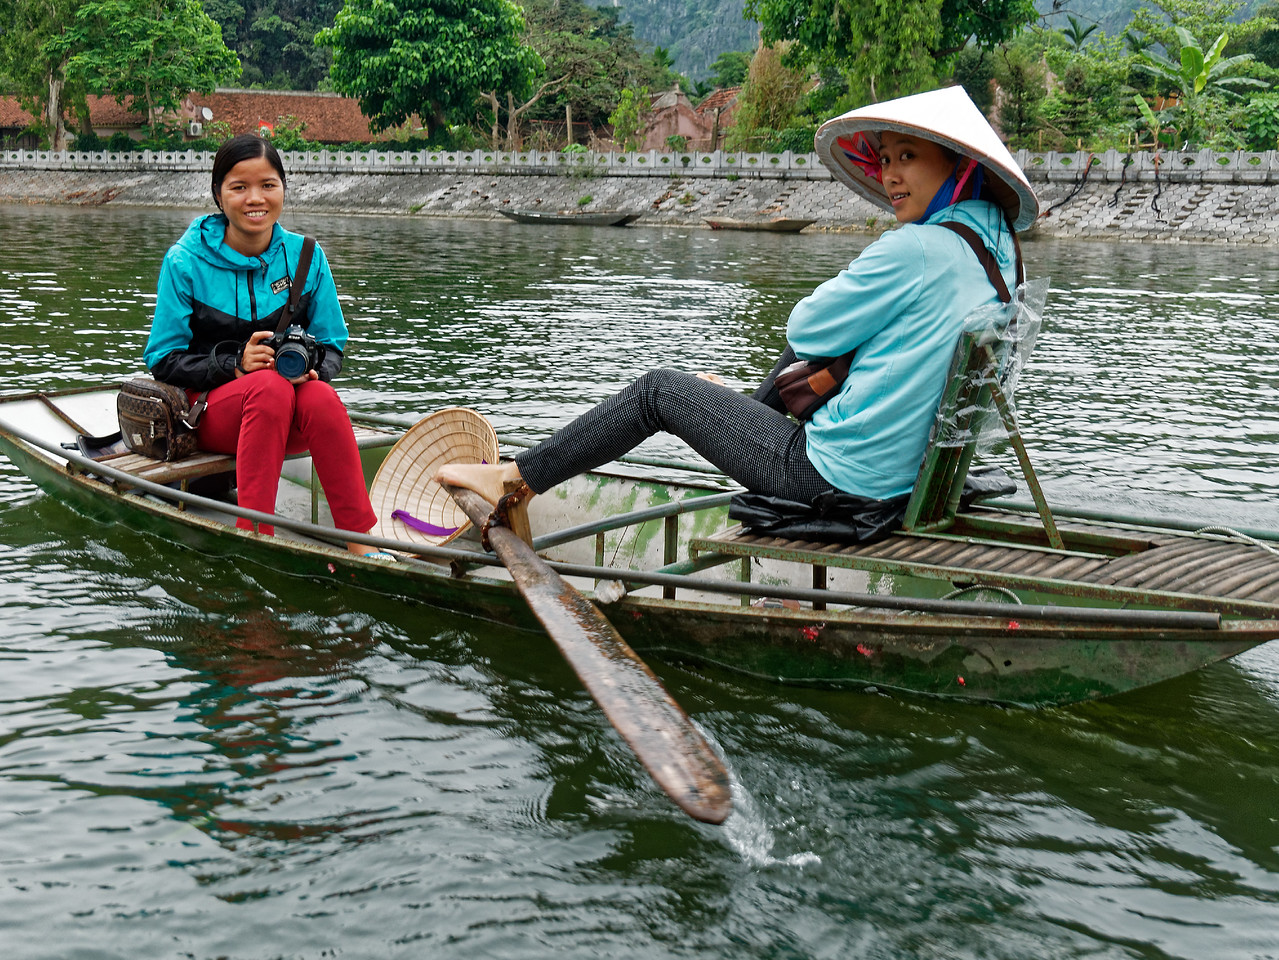 Most of the boats are rowed by women, who do so using their feet and legs.